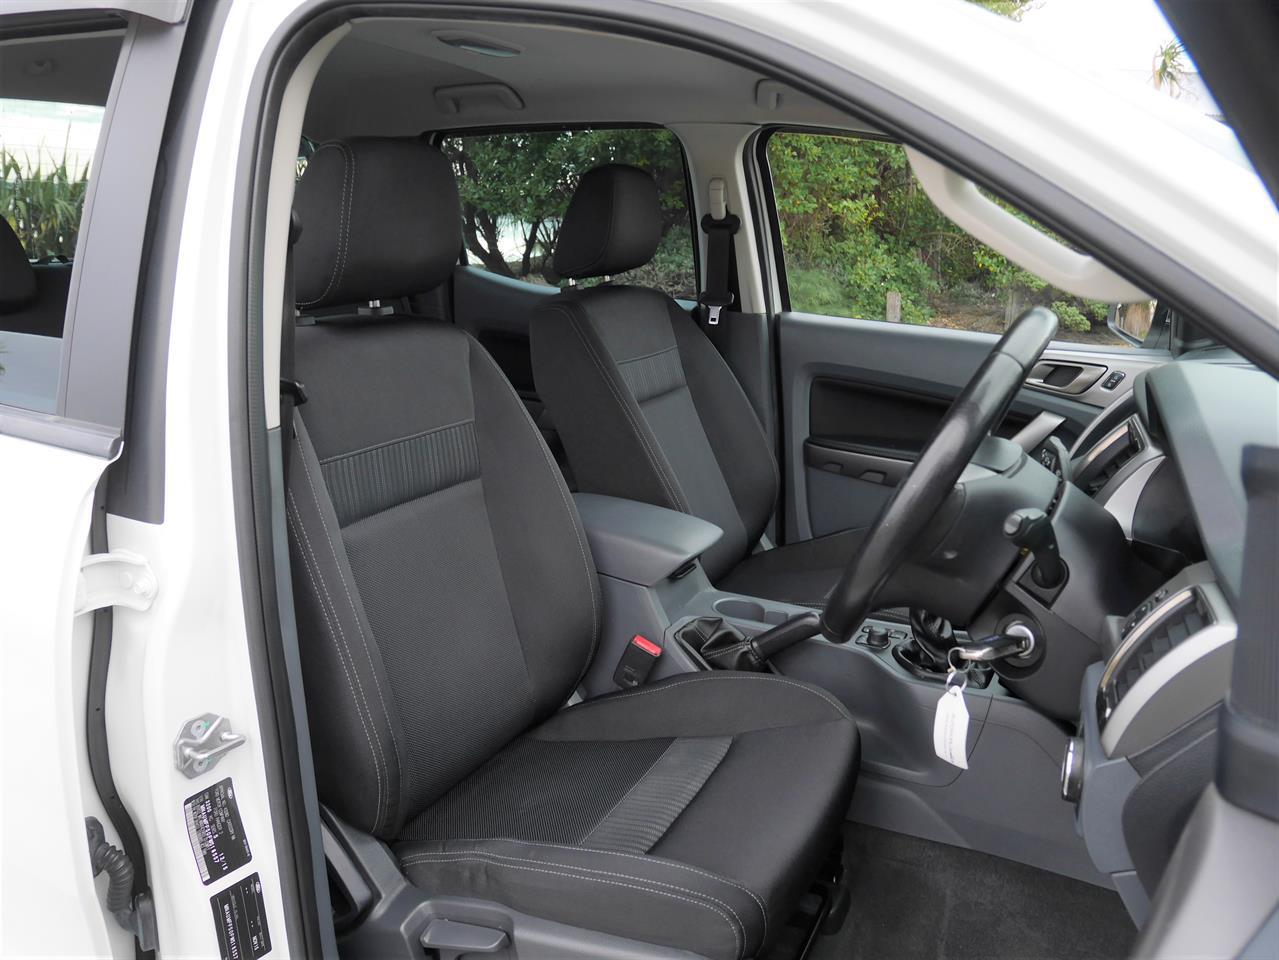 image-2, 2016 FORD RANGER XLT 3.2TD 4WD double cab at Invercargill